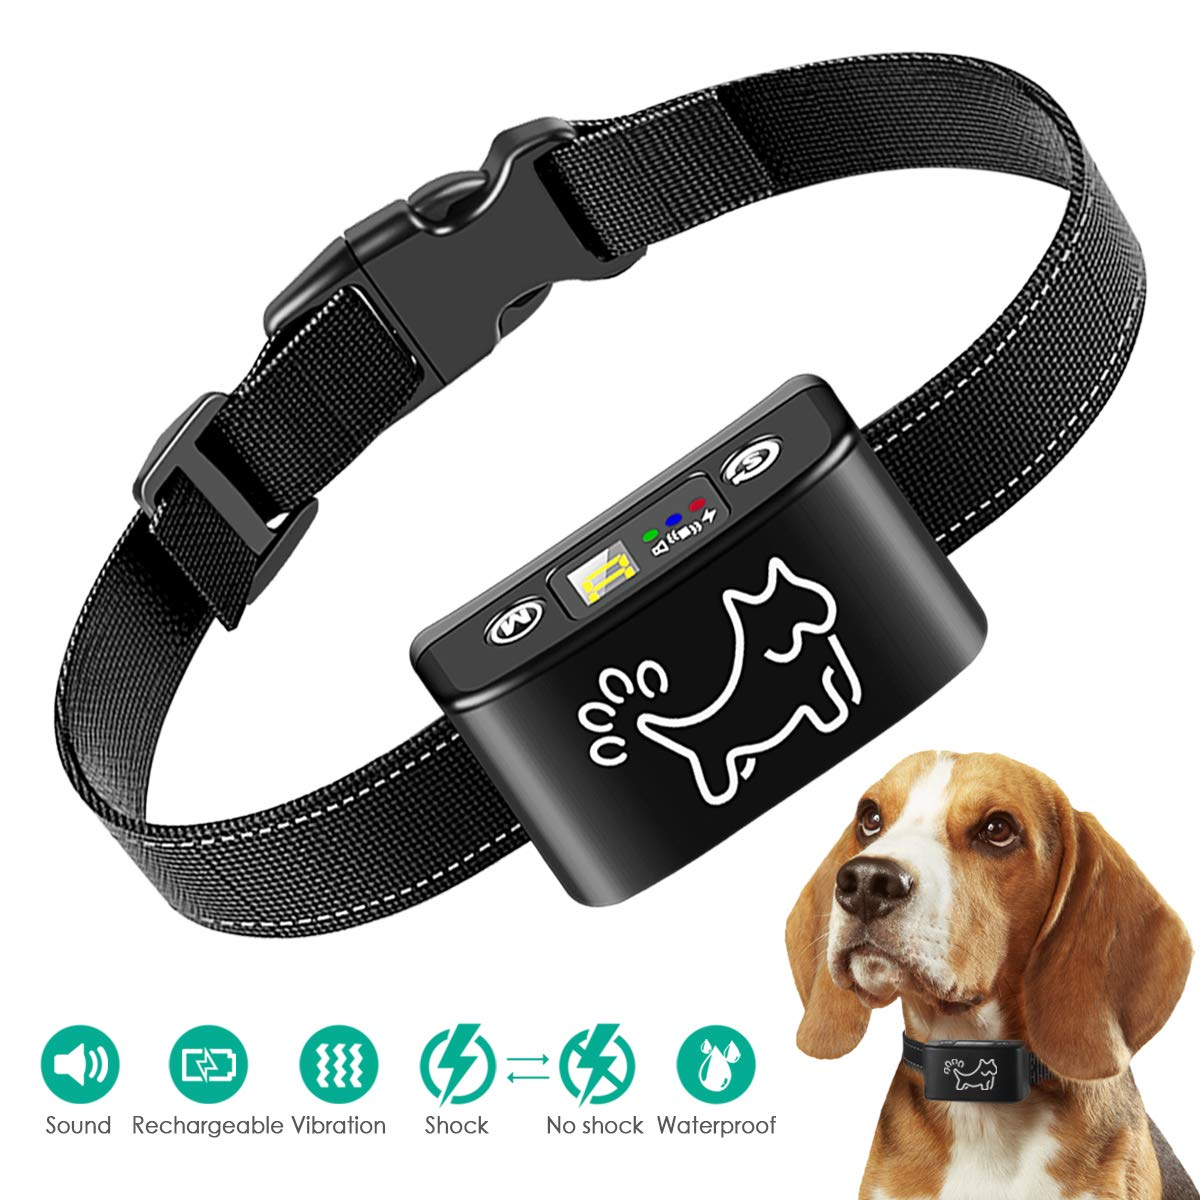 Anti Bark Collar for Small, Medium, Large Dogs - Dog Bark Shock Collar Device to Stop,Control Barking w/Humane Newest Automatic ULTRASONIC TECH for 5-120 lbs Breeds